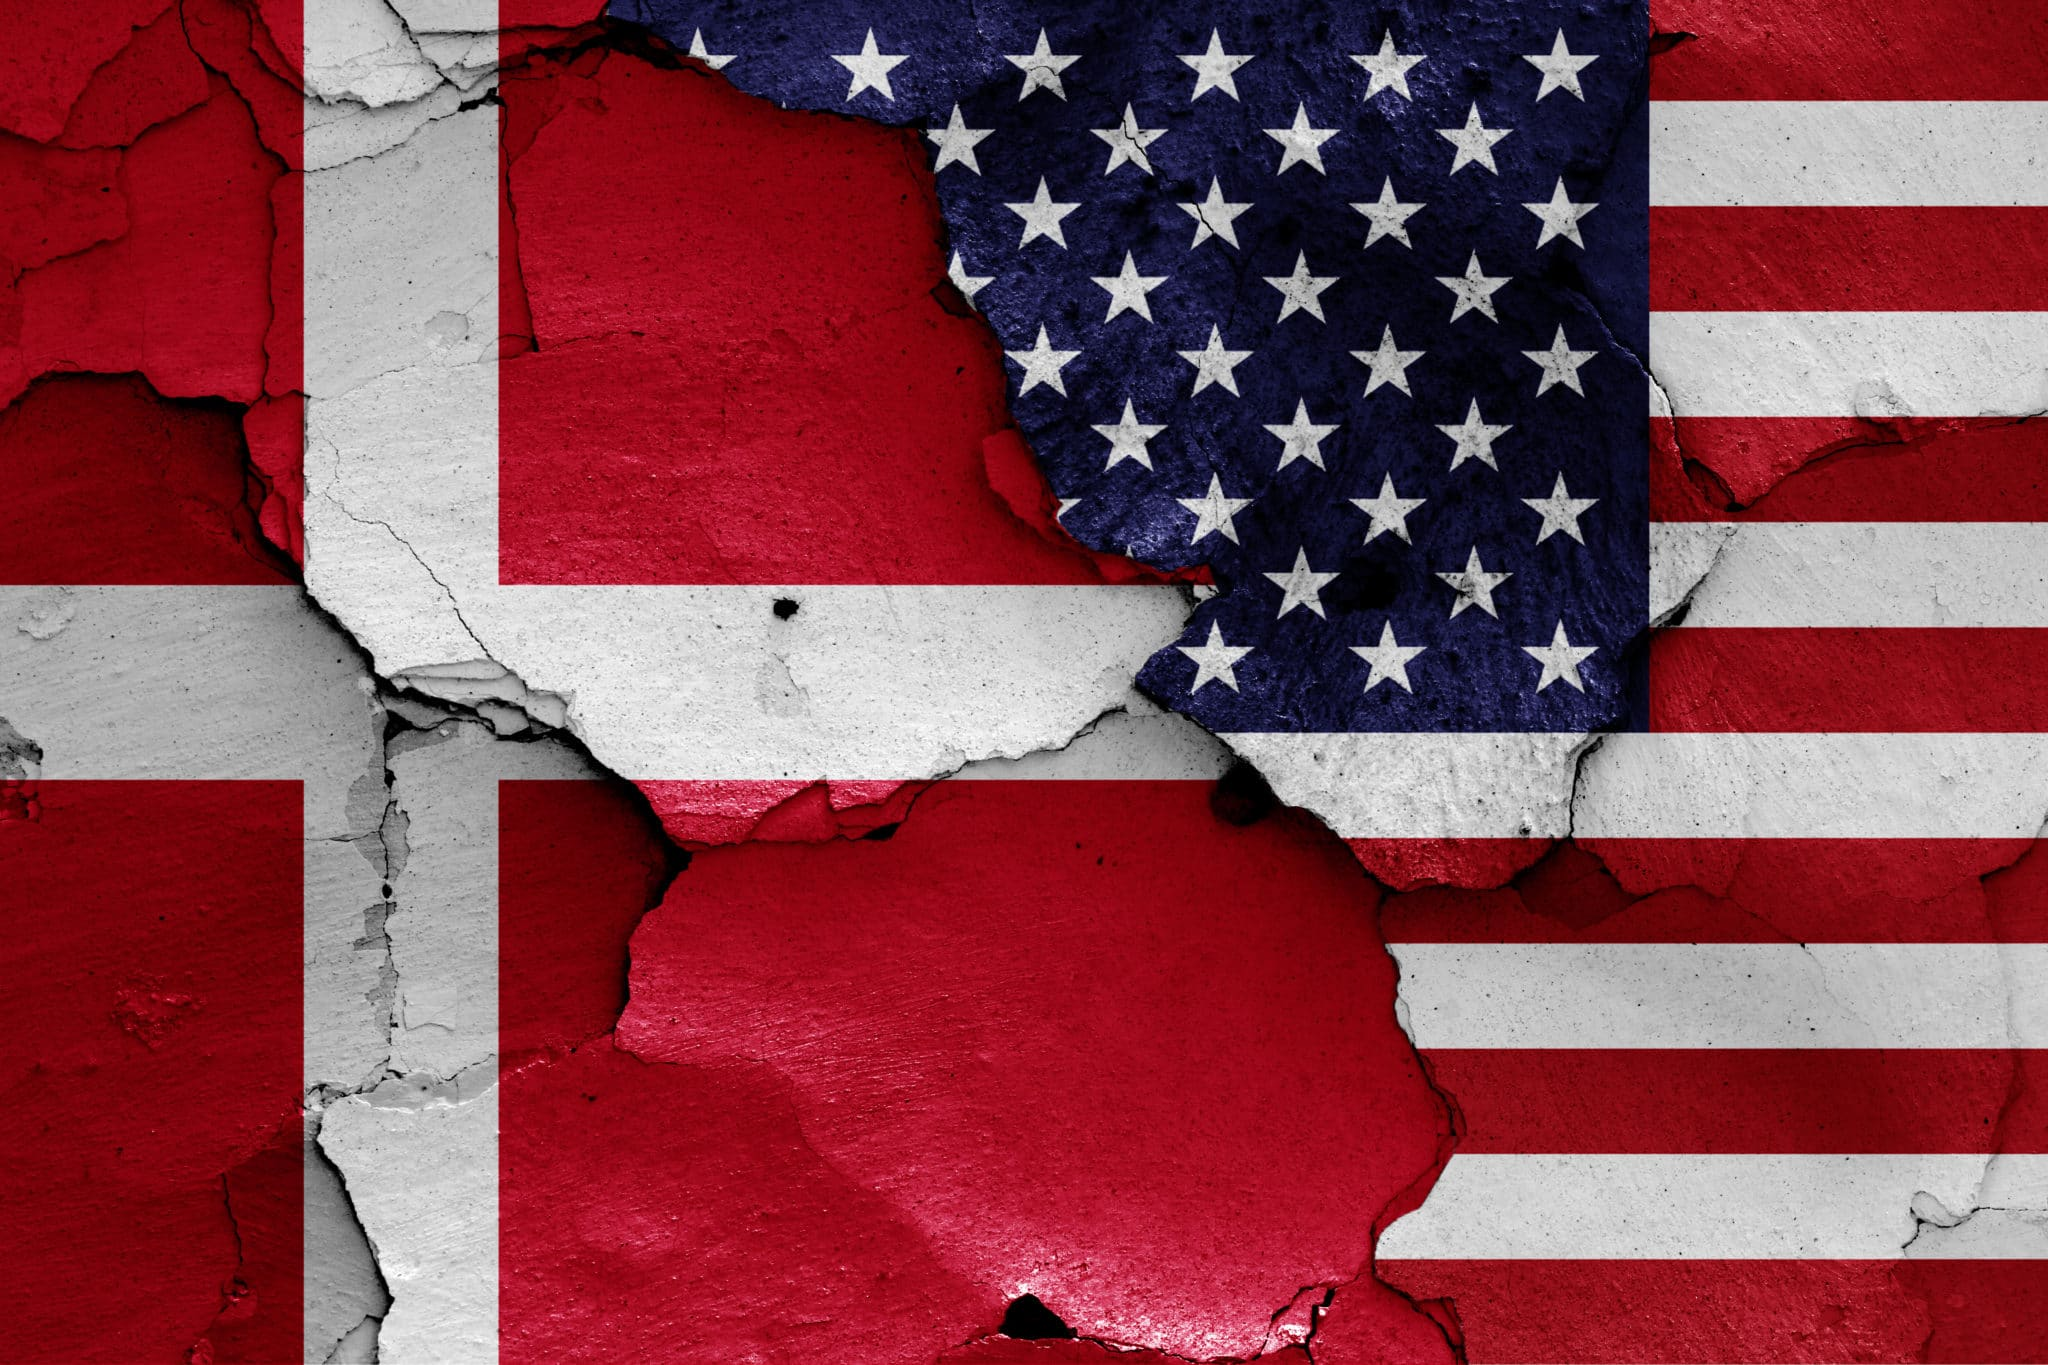 What can Denmark and the US learn from each other?